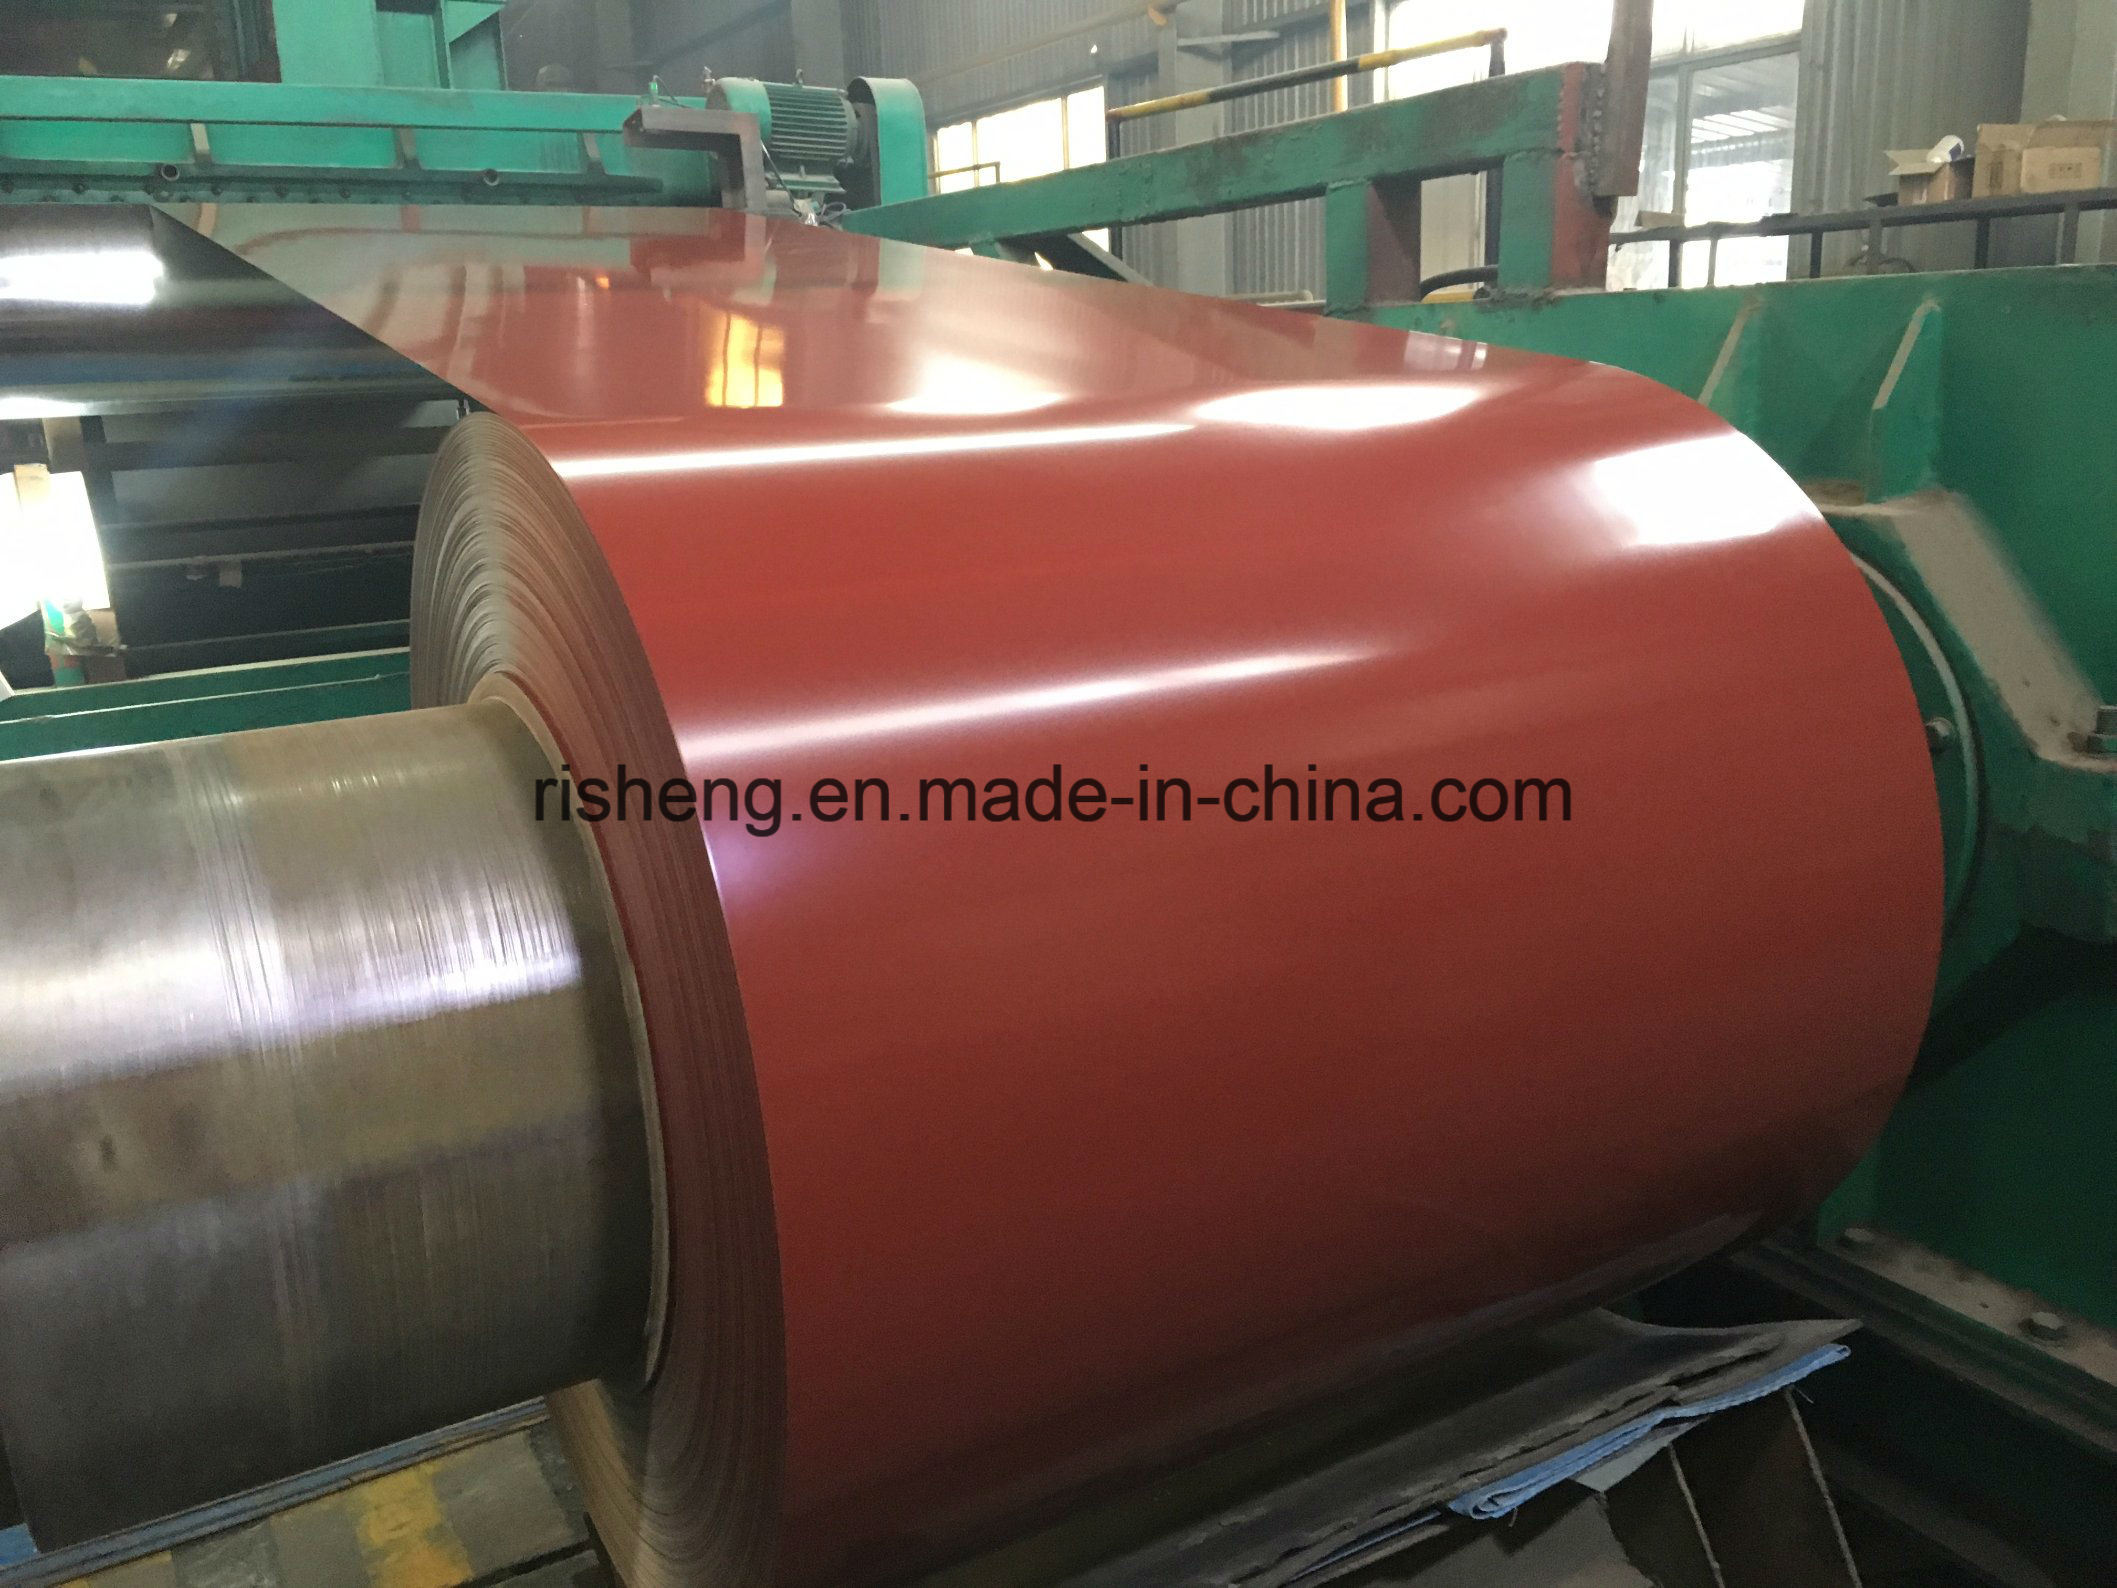 Factory Price Prepainted Galvanized Steel Coil PPGI